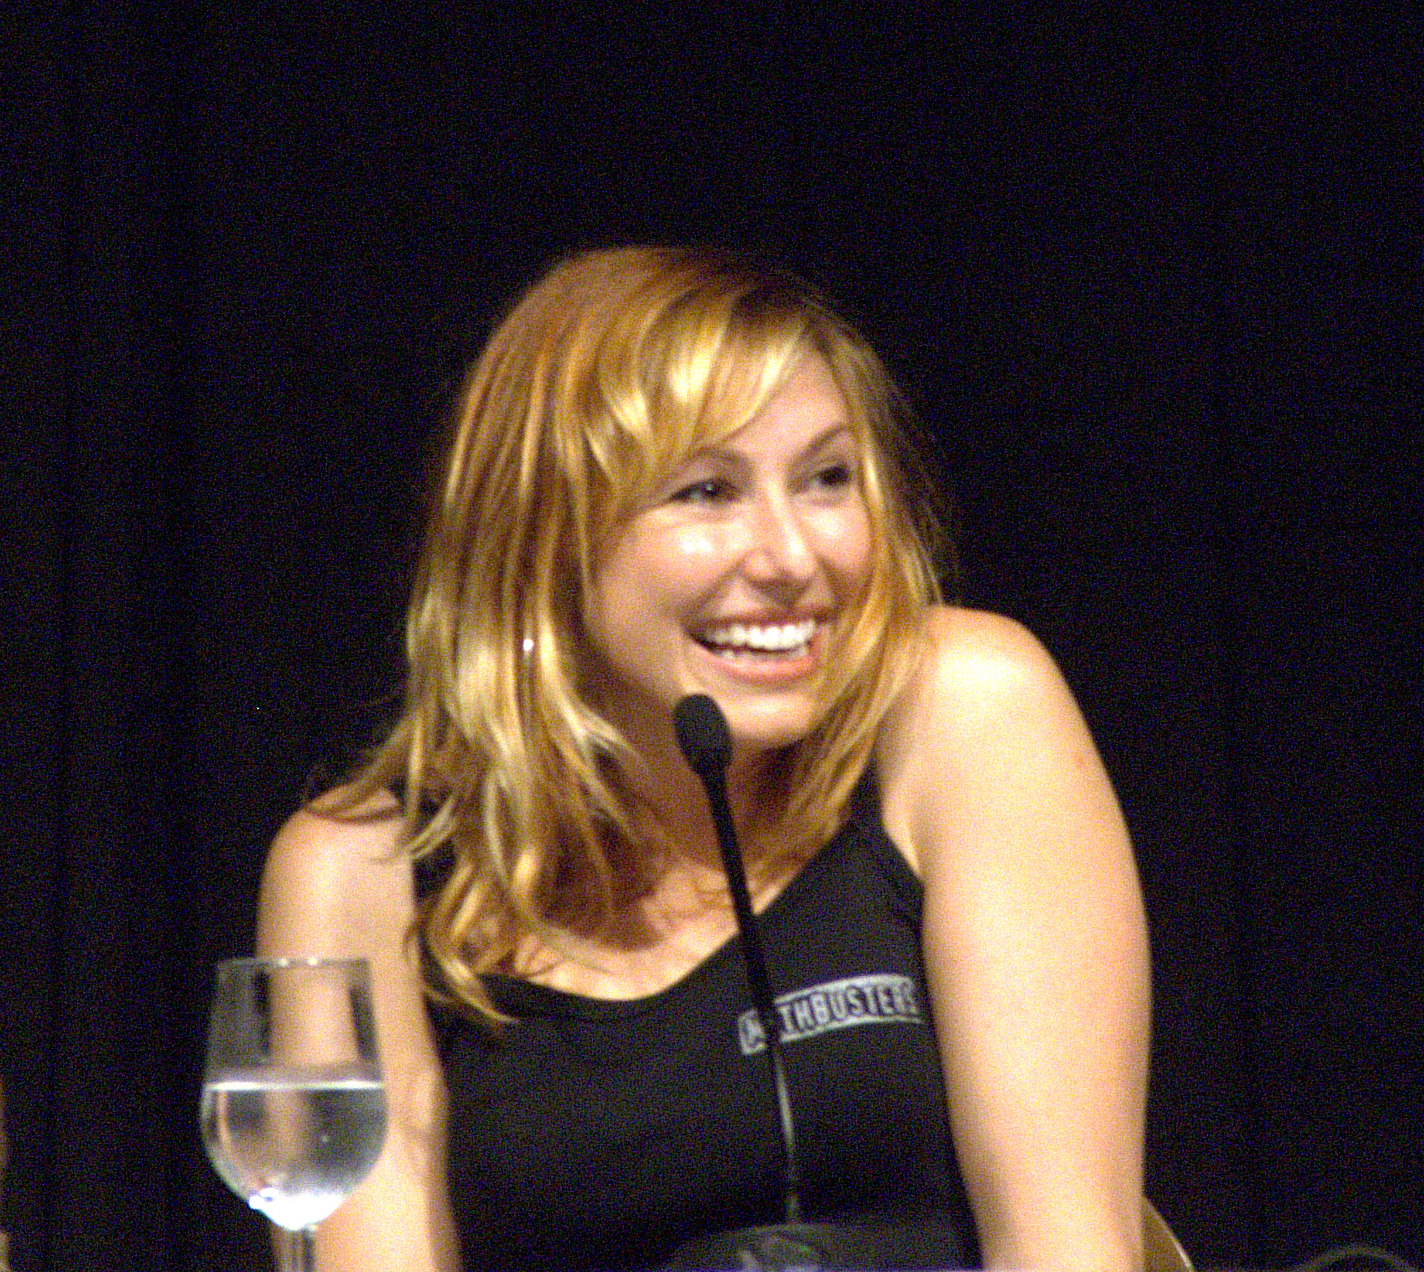 Kari Byron Hair http://www.sodahead.com/living/guyzwats-ur-opinion-on-gurlz-with-red-hair/question-646257/